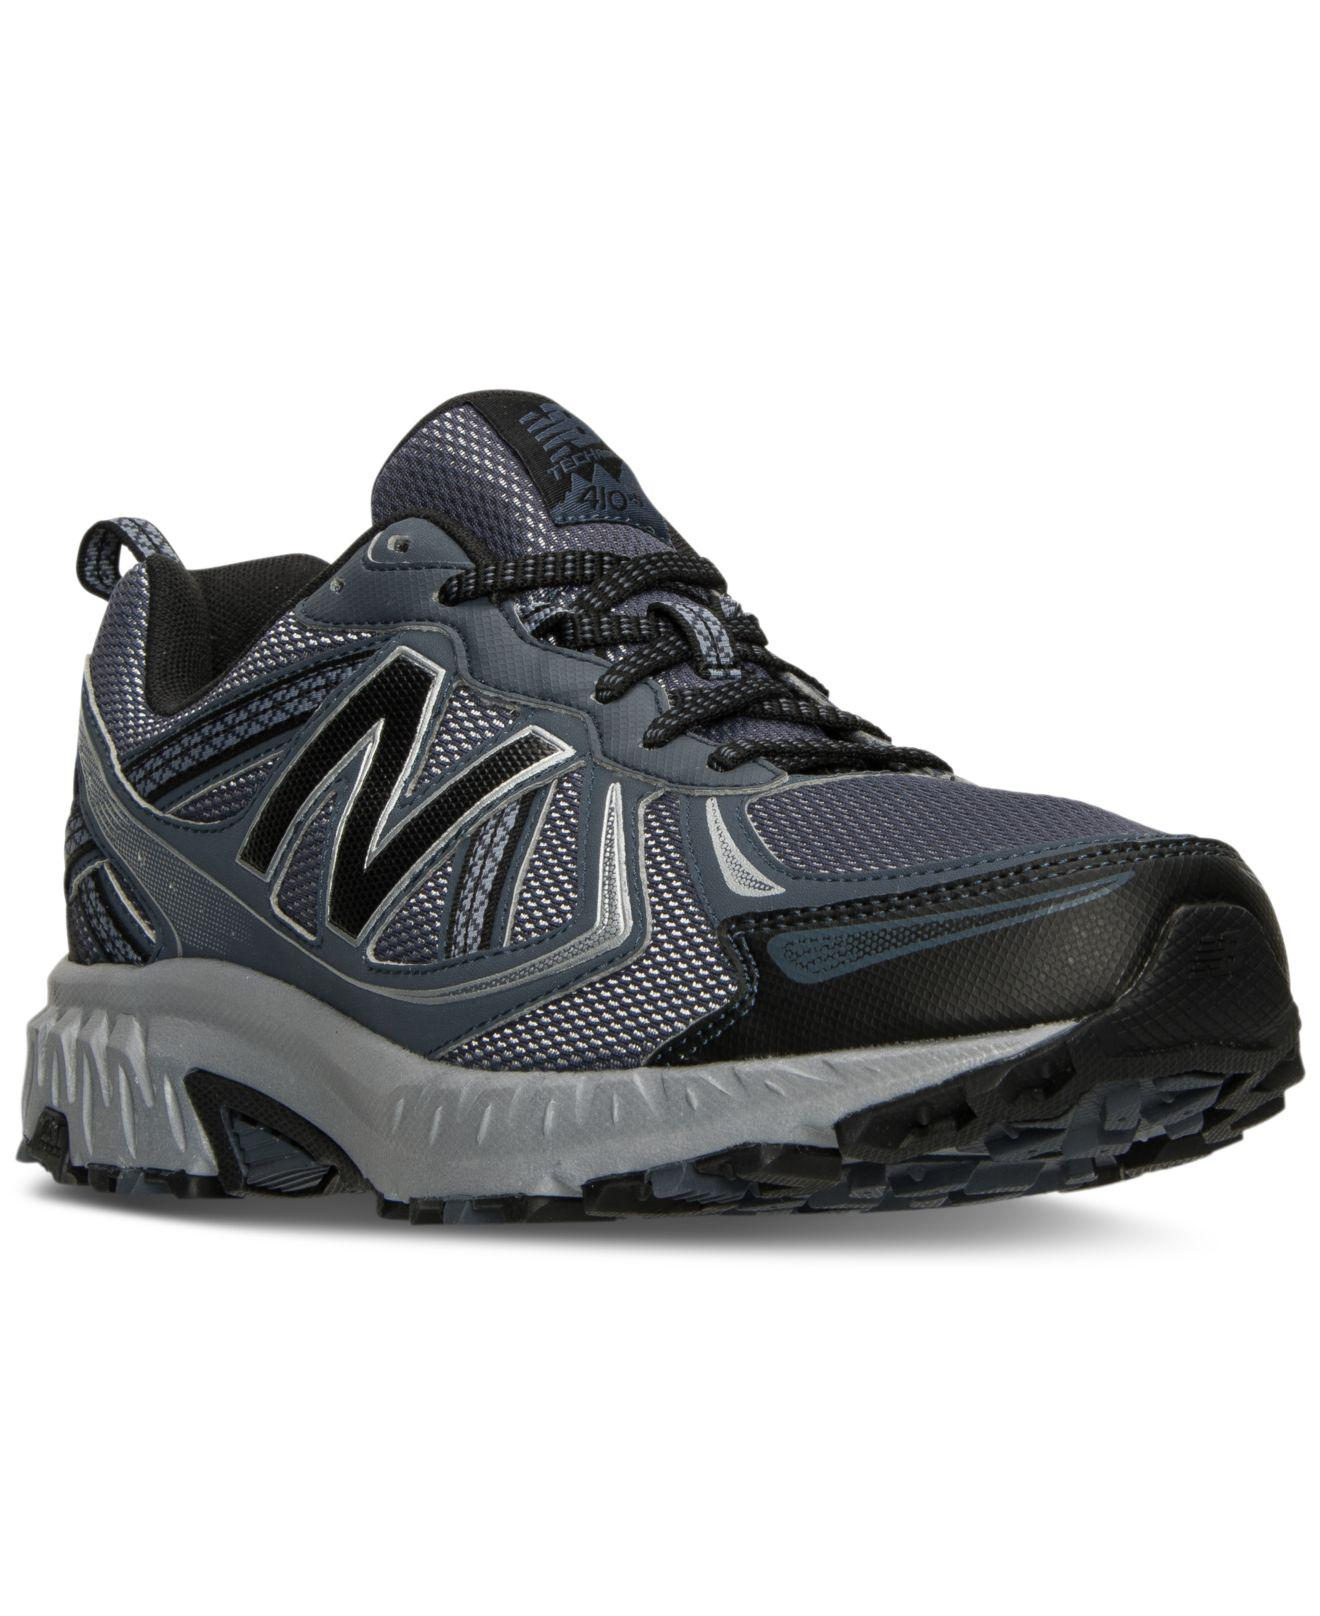 527942242a2aa New Balance Men's Mt410 V5 Running Sneakers From Finish Line in ...